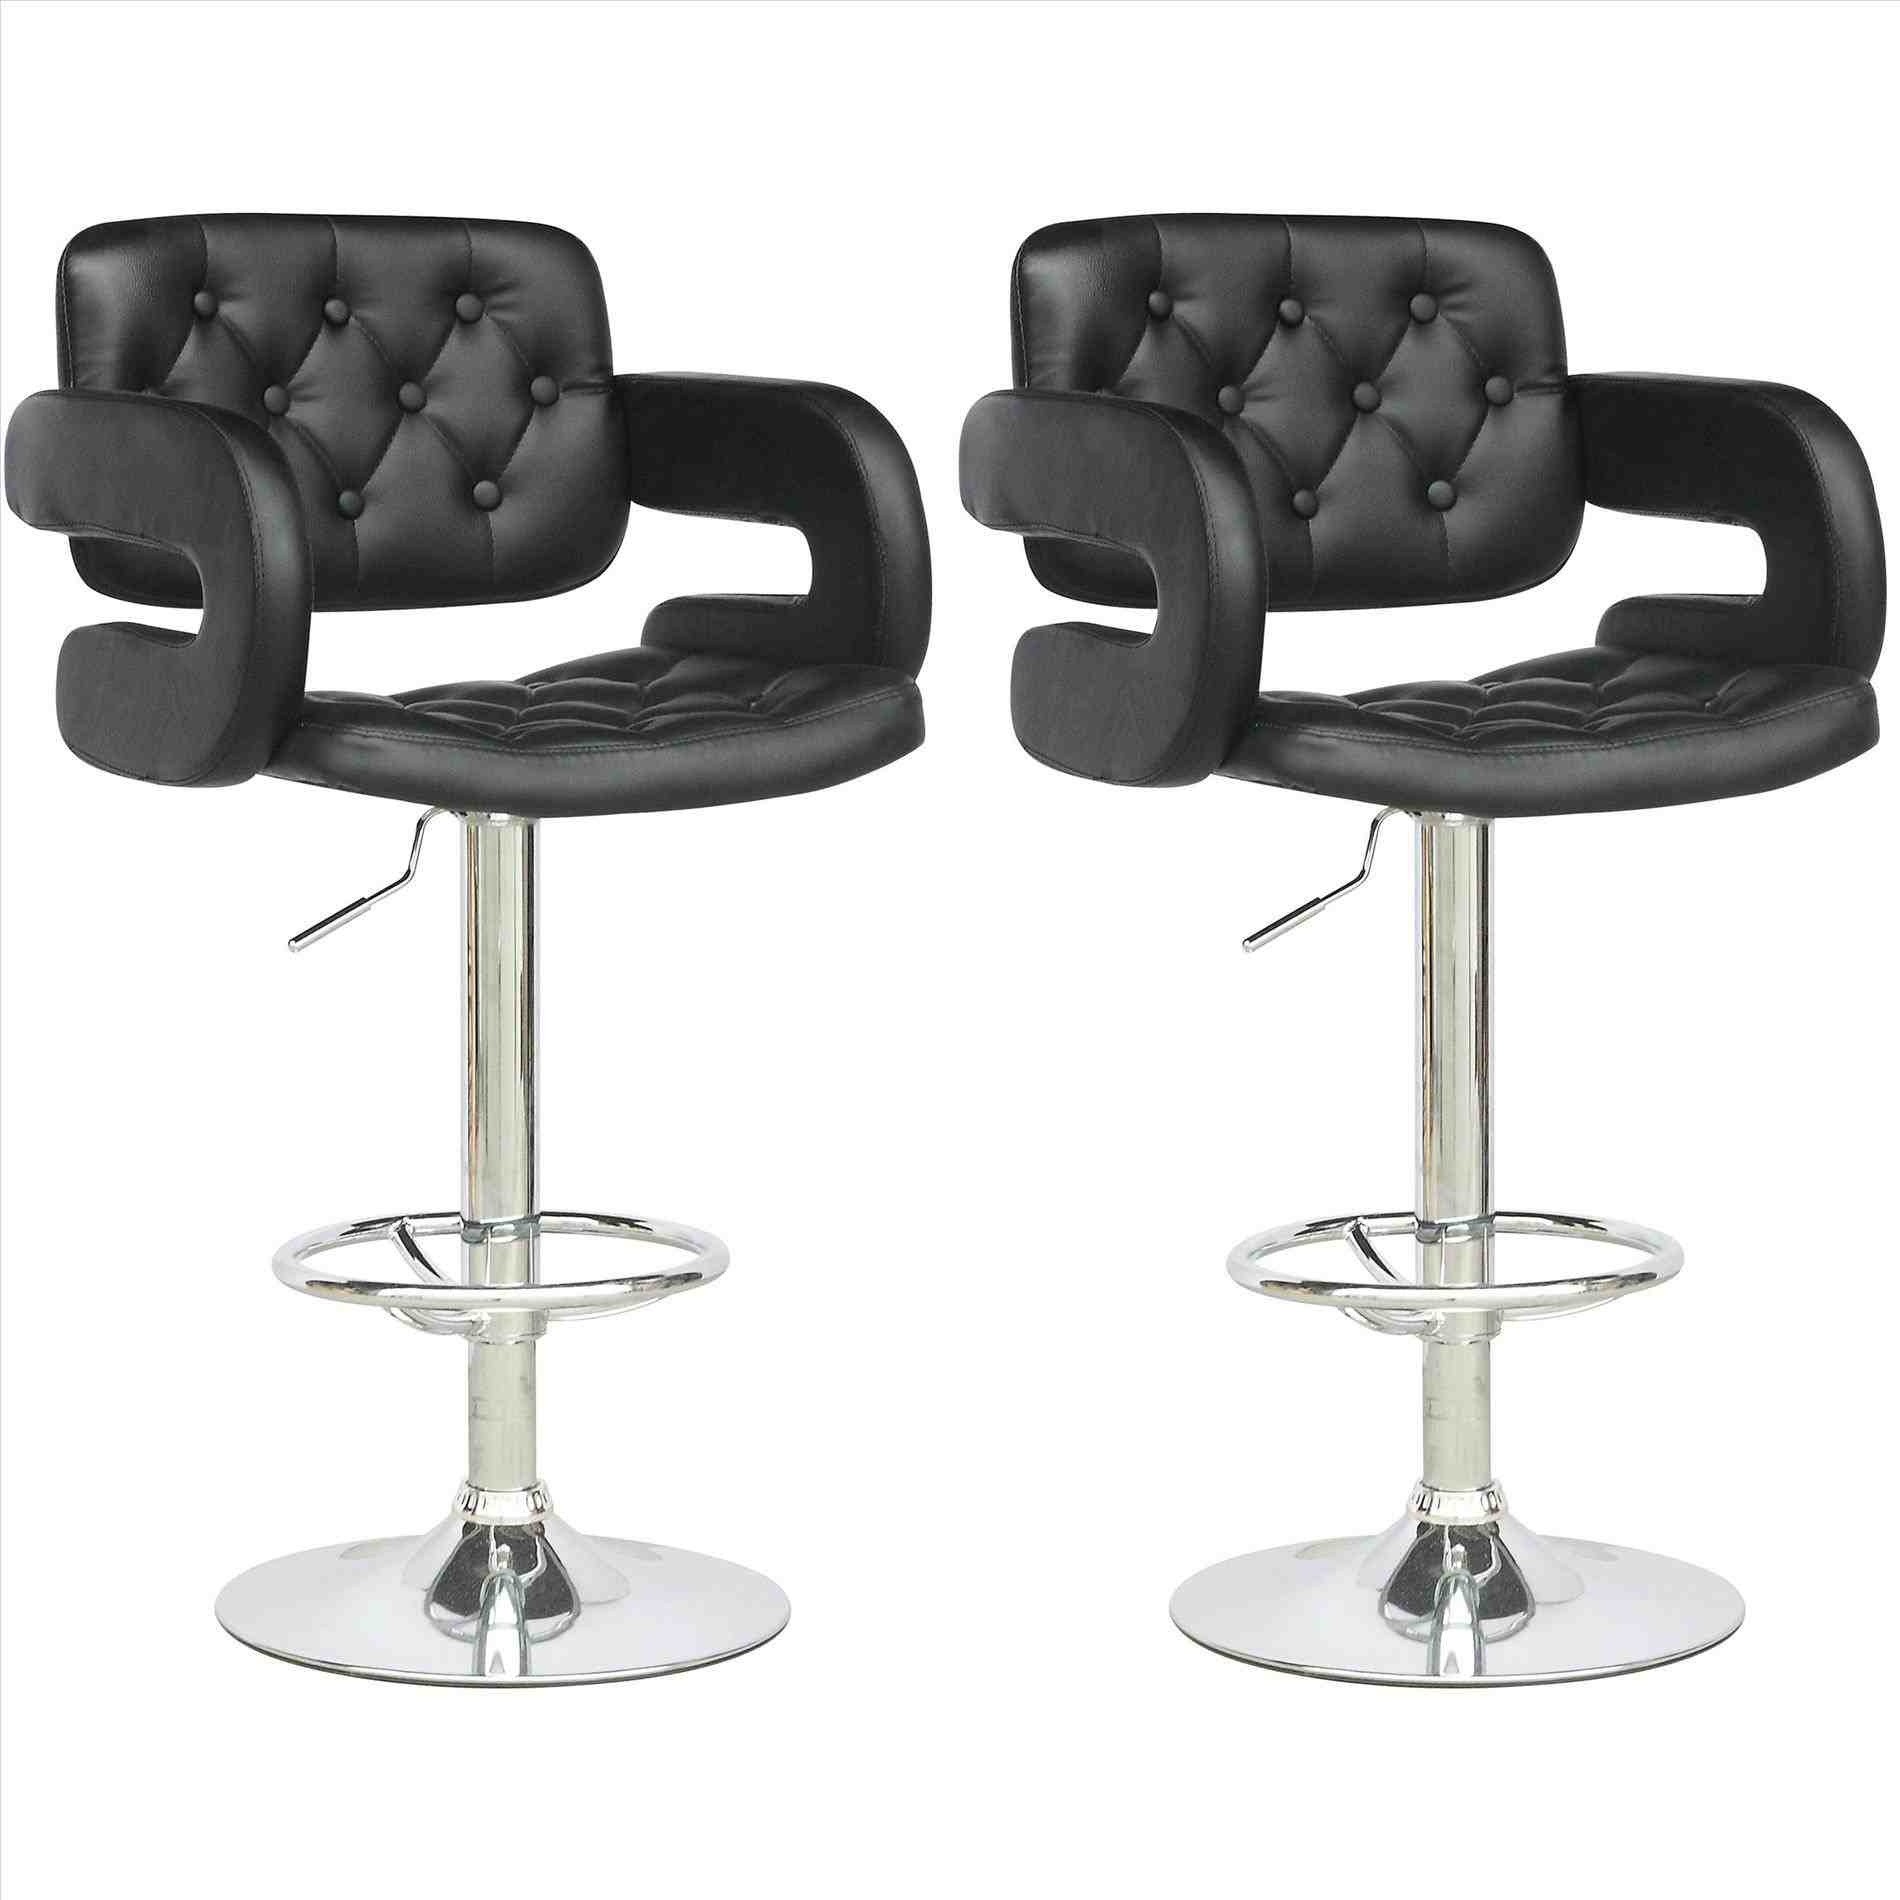 attractive adjustable bar stool with backrests and armrests charming stool back YXDSOFE